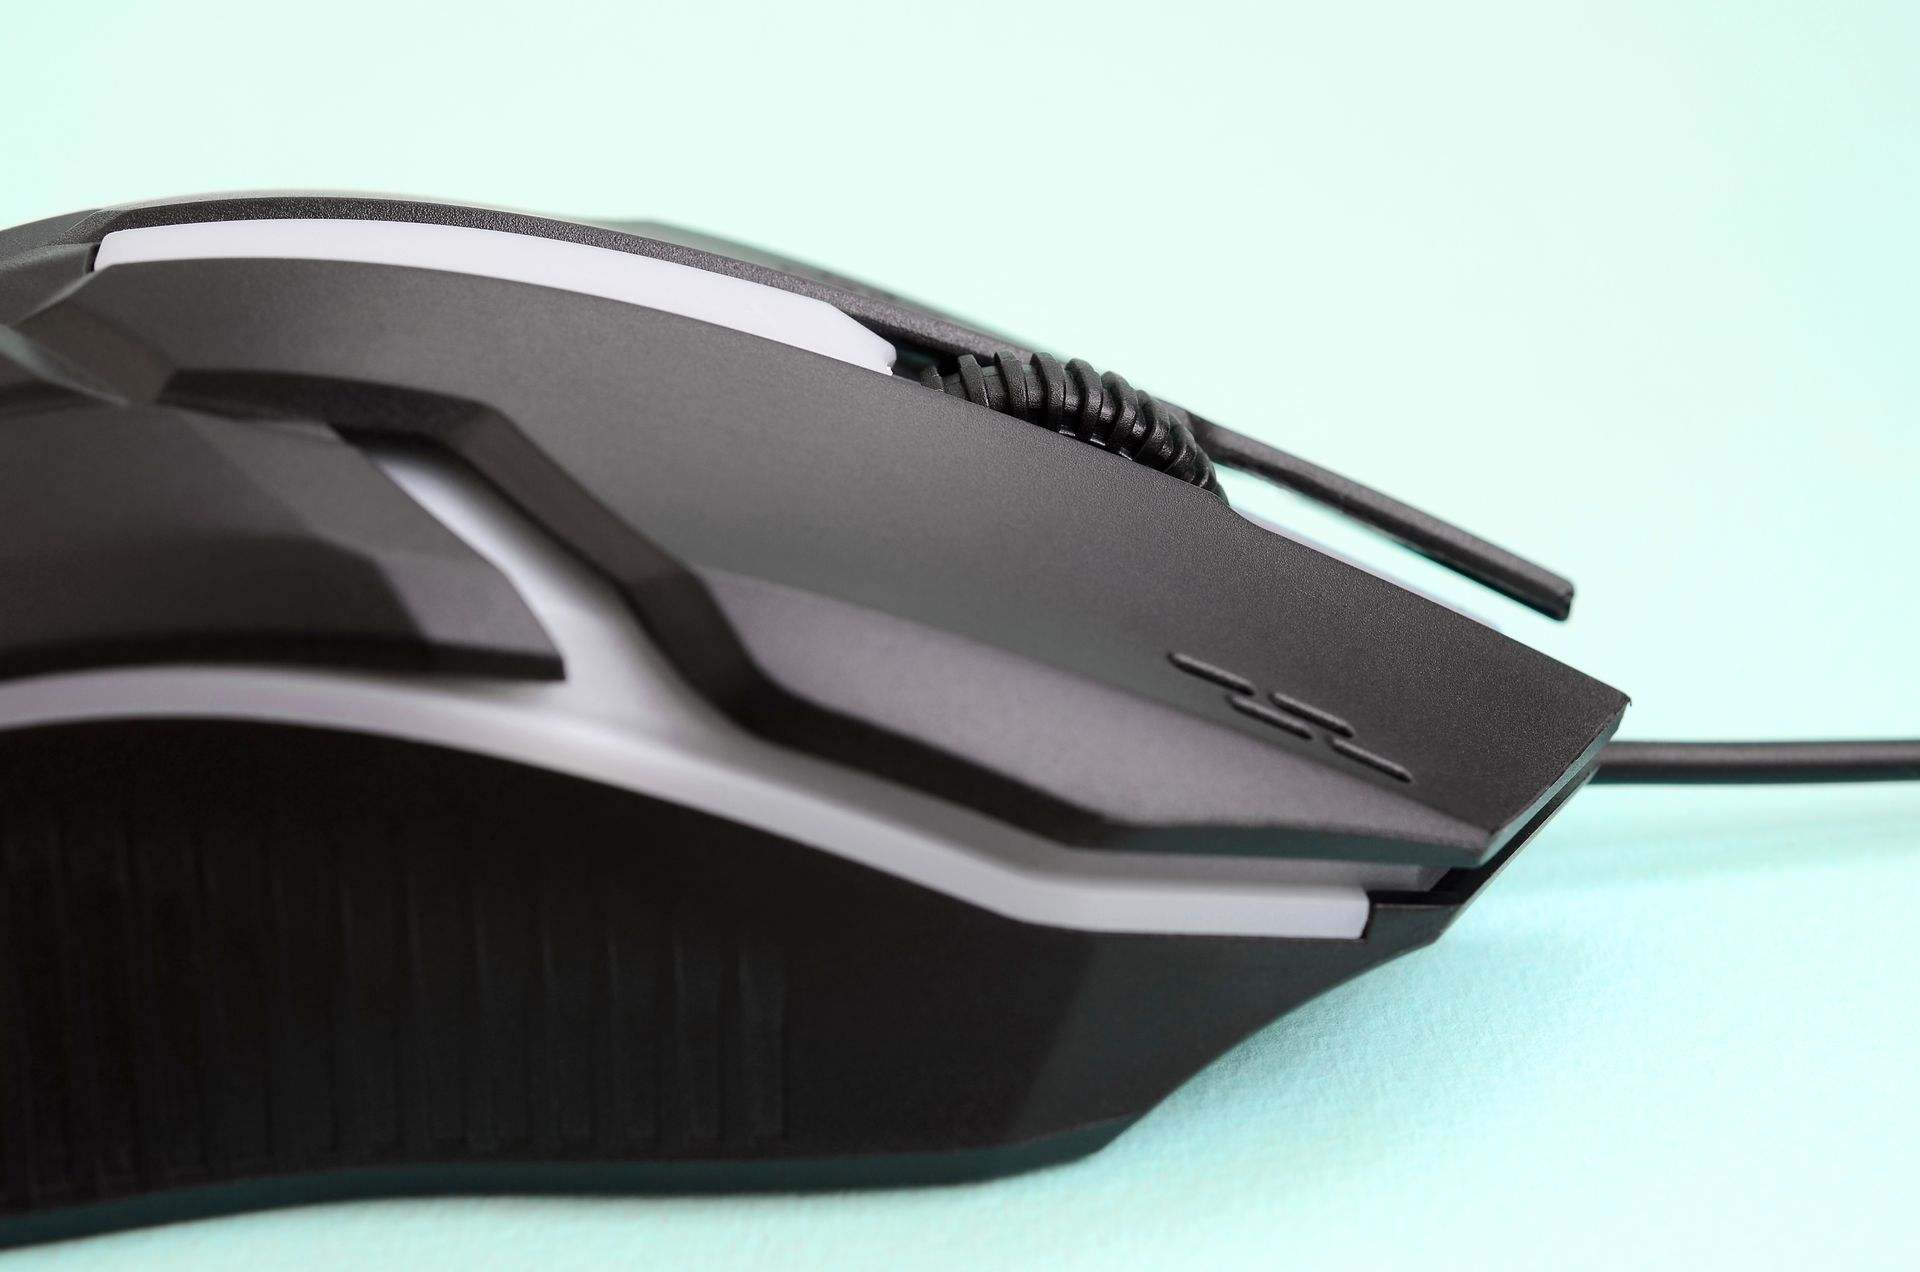 Best Mouse Under 500 In India